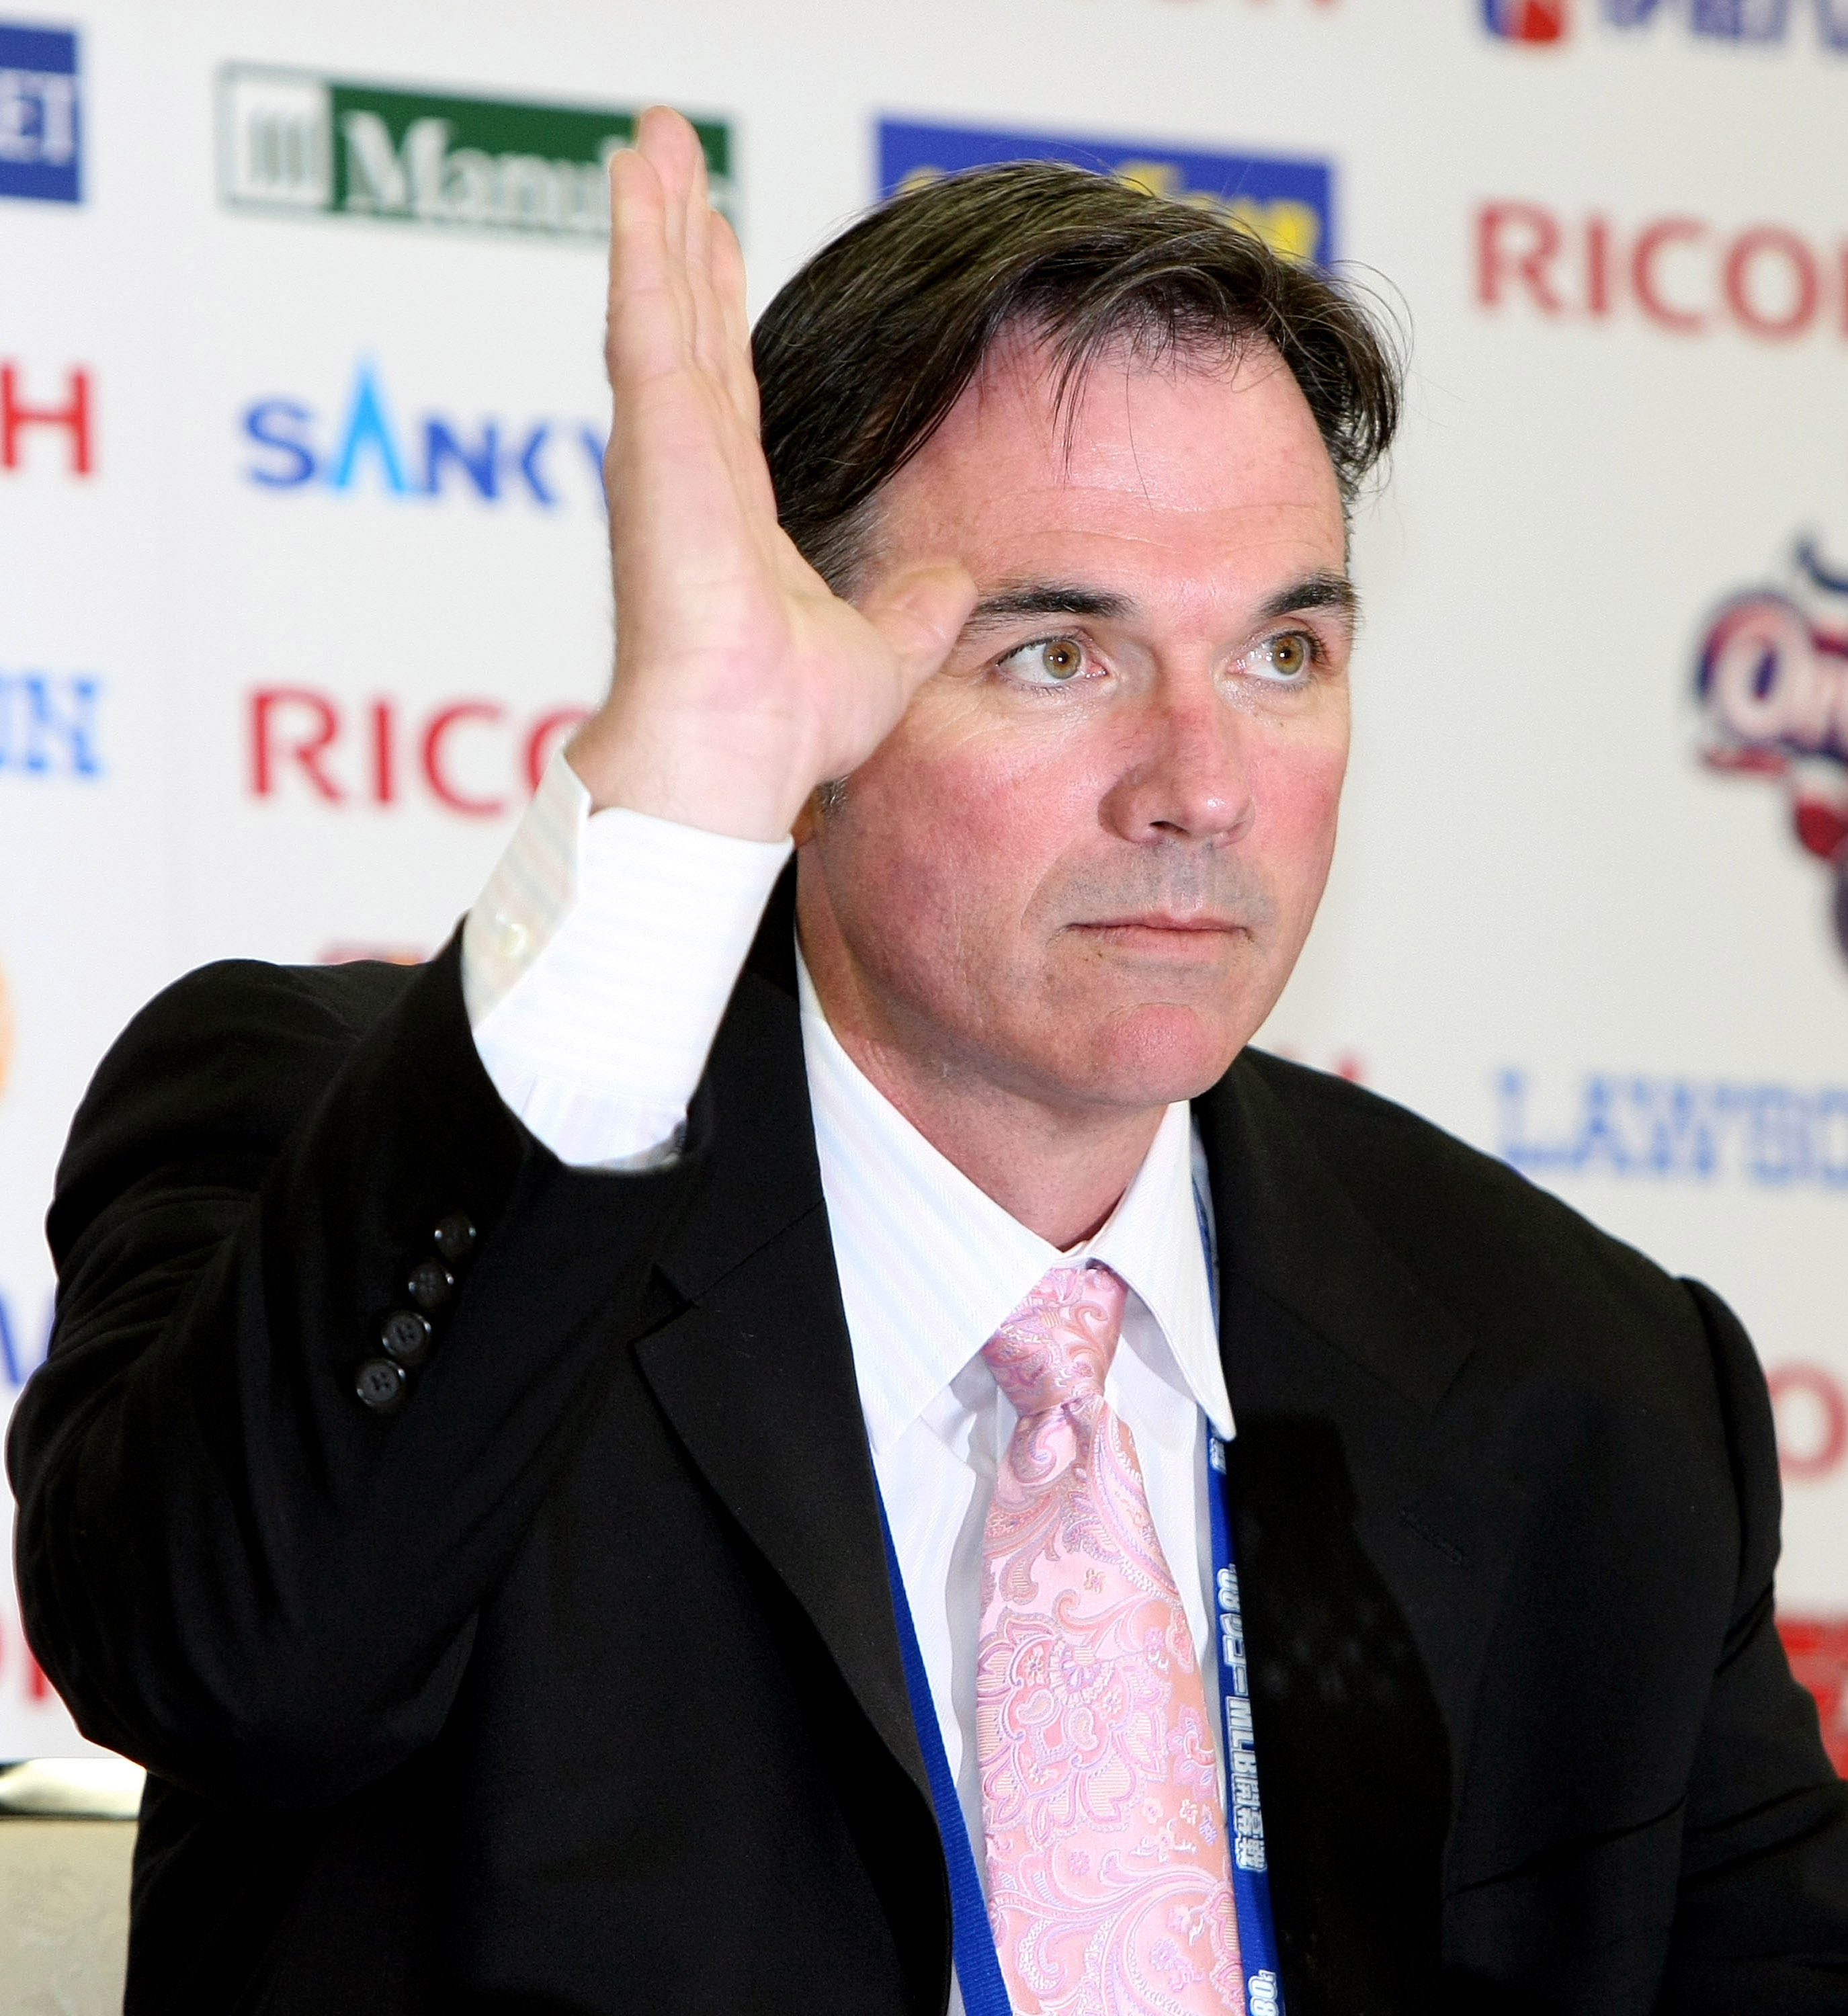 TOKYO - MARCH 21:  GM Billy Beane of Oakland Athletics attends Ricoh MLB Opening Series press conference at Tokyo Dome on March 21, 2008 in Tokyo, Japan. Boston Red Sox and Oakland Athletics plays their opening games in Tokyo on March 25 and 26. (Photo by